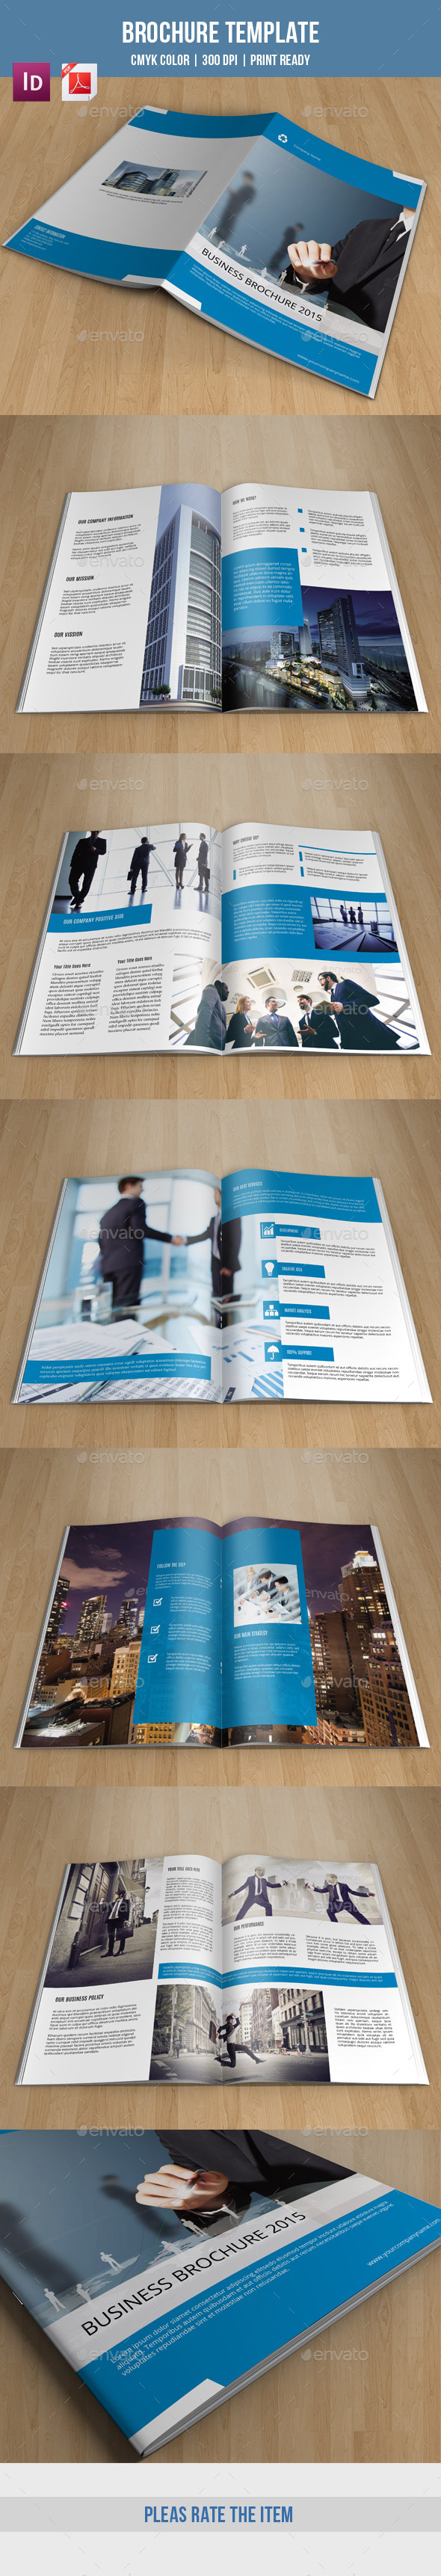 Corporate Bifold Brochure-V179 - Corporate Brochures